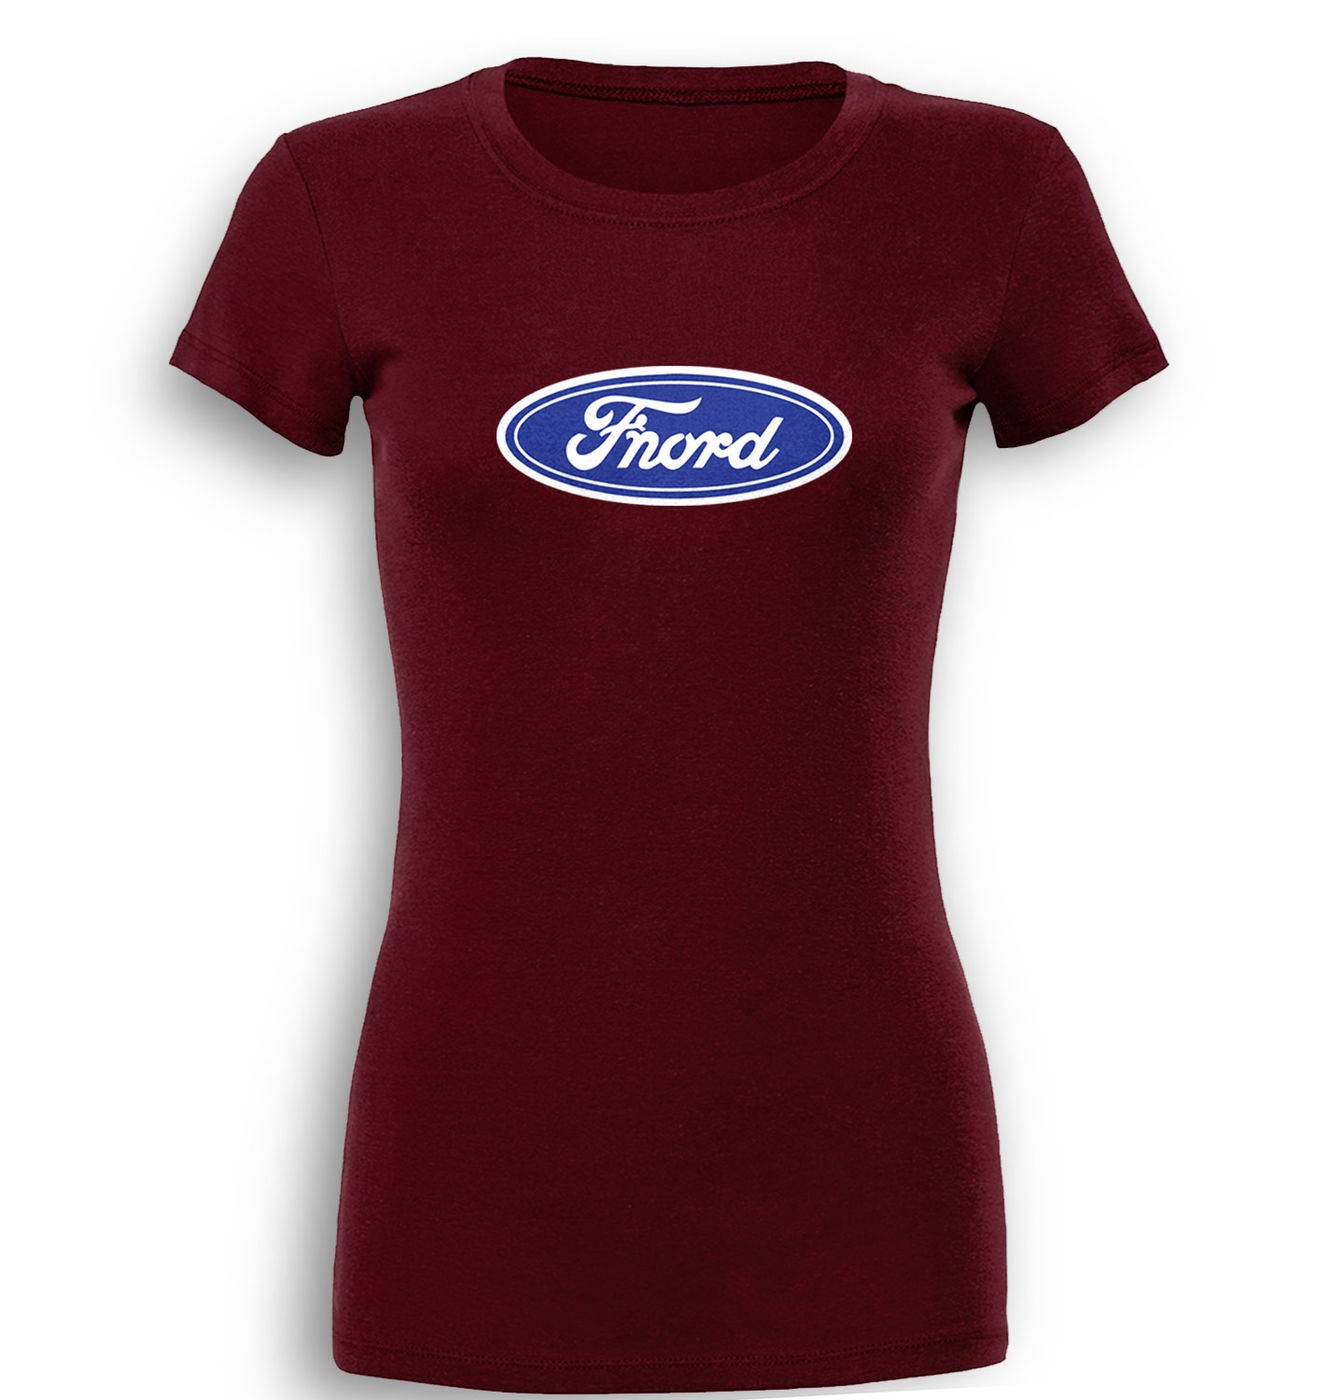 Fnord (Logo) premium women's t-shirt by Something Geeky